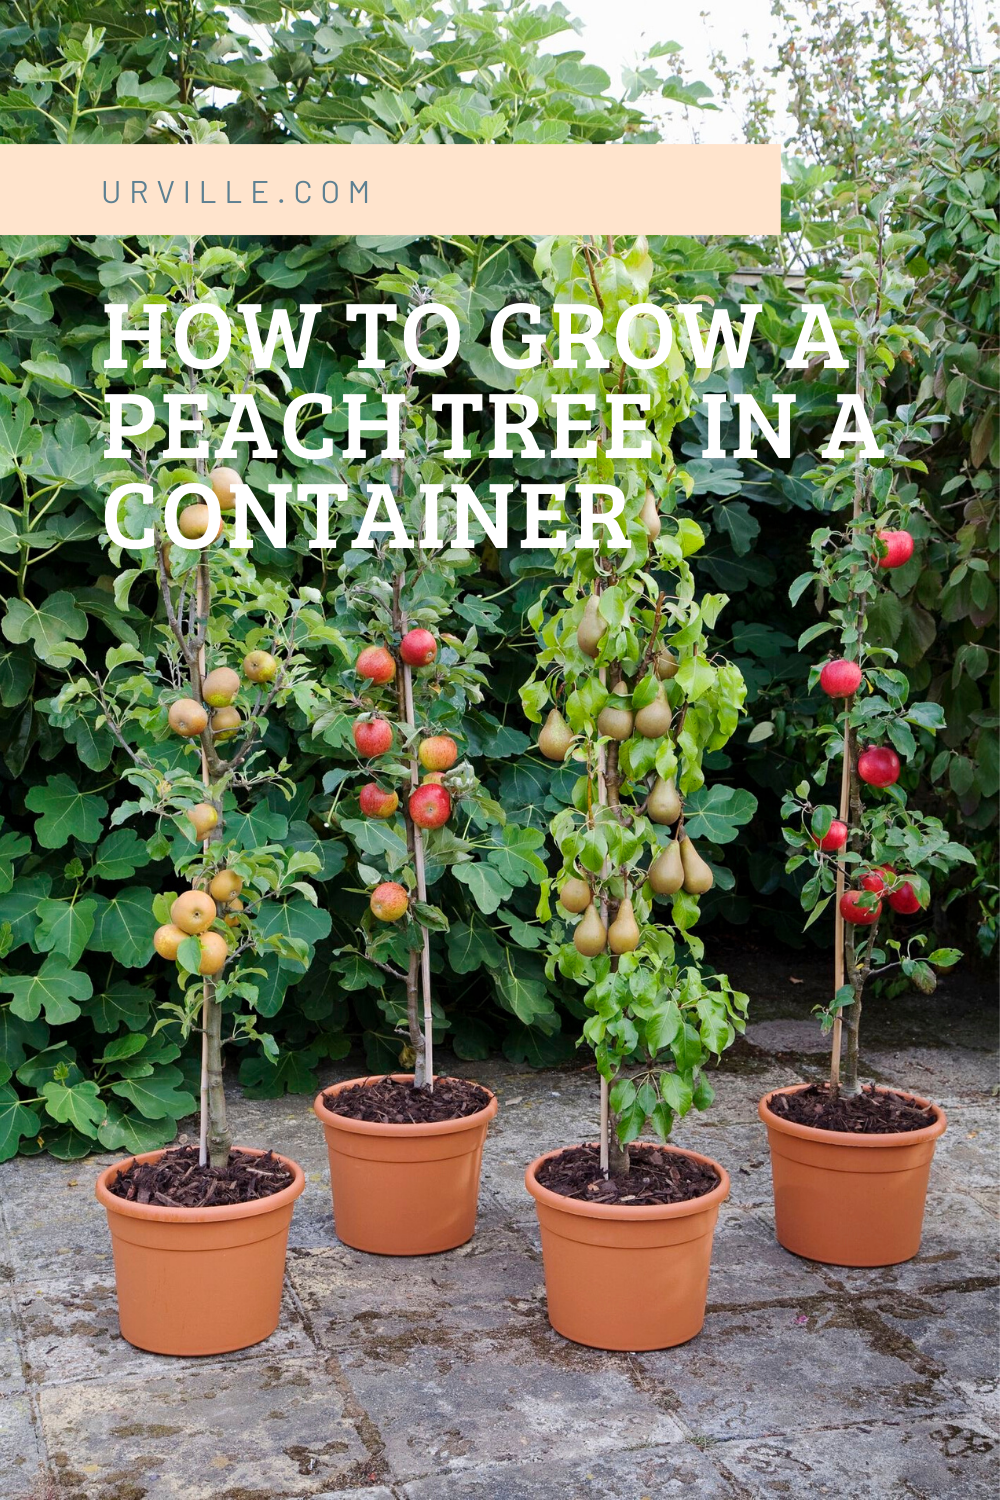 How To Grow A Peach Tree In A Container Dwarf Fruit Trees Growing Fruit Trees Fruit Trees In Containers